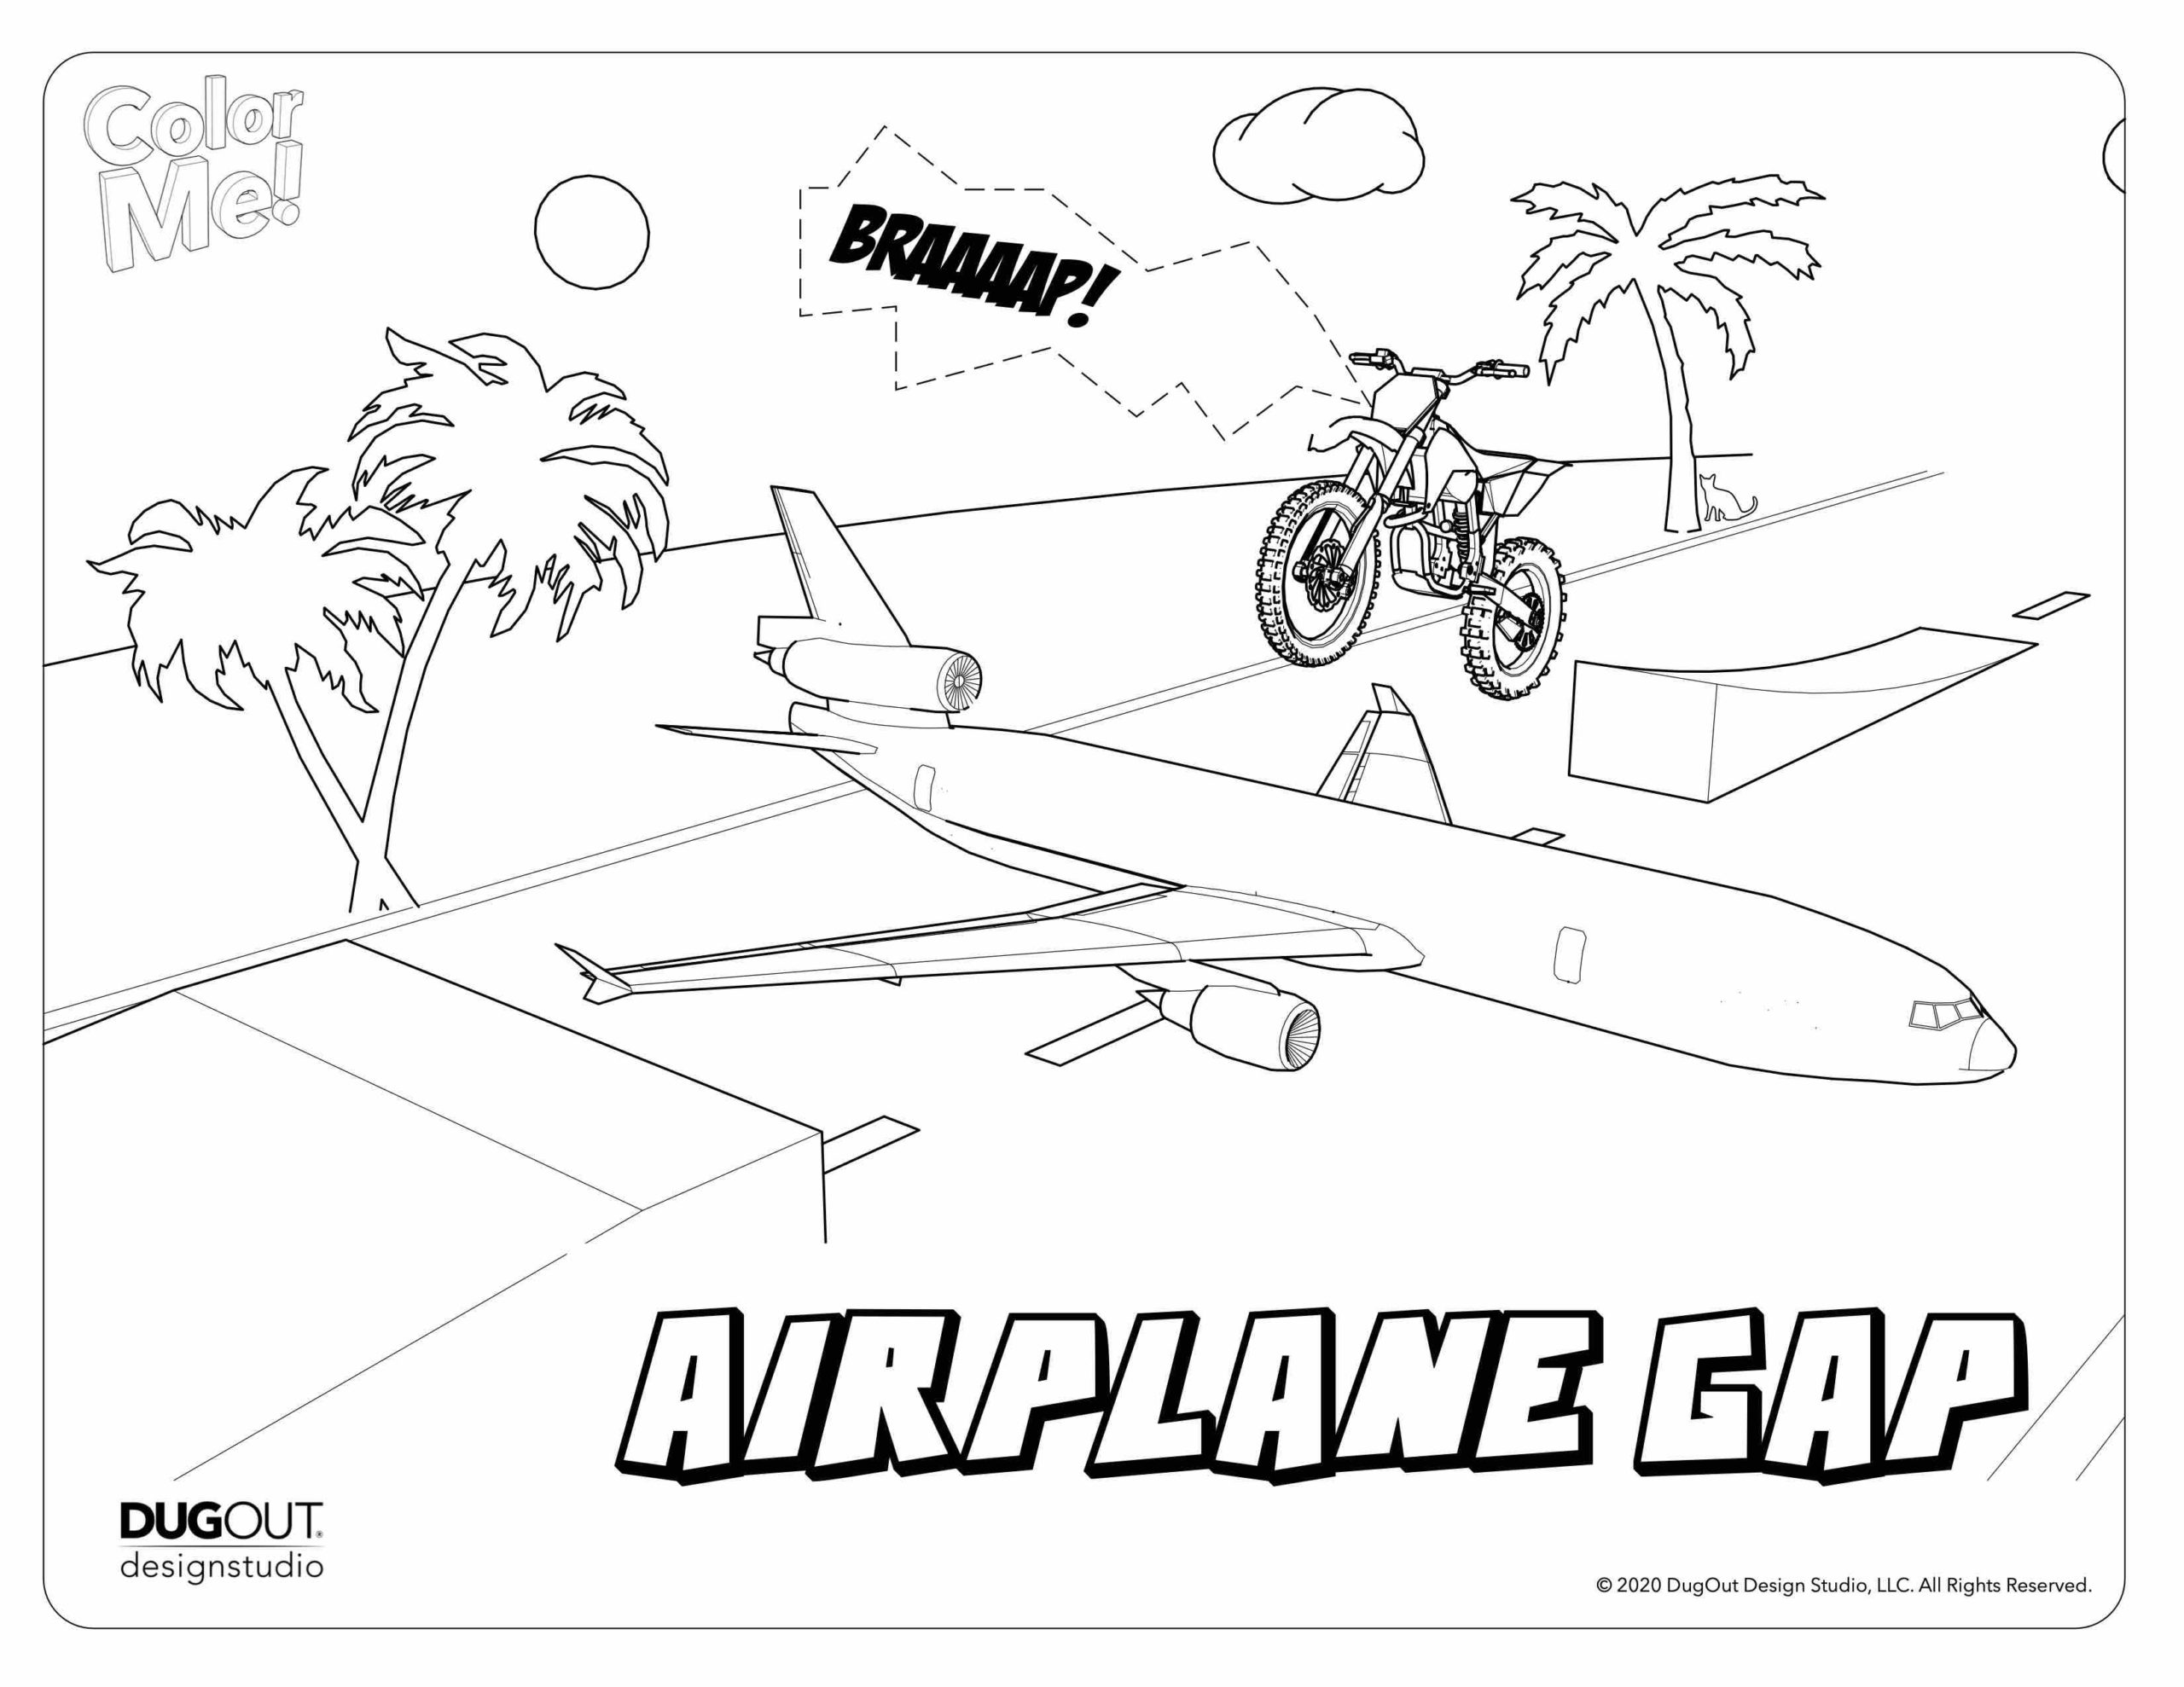 Airplane Gap coloring page with motorcycle launching over airplane